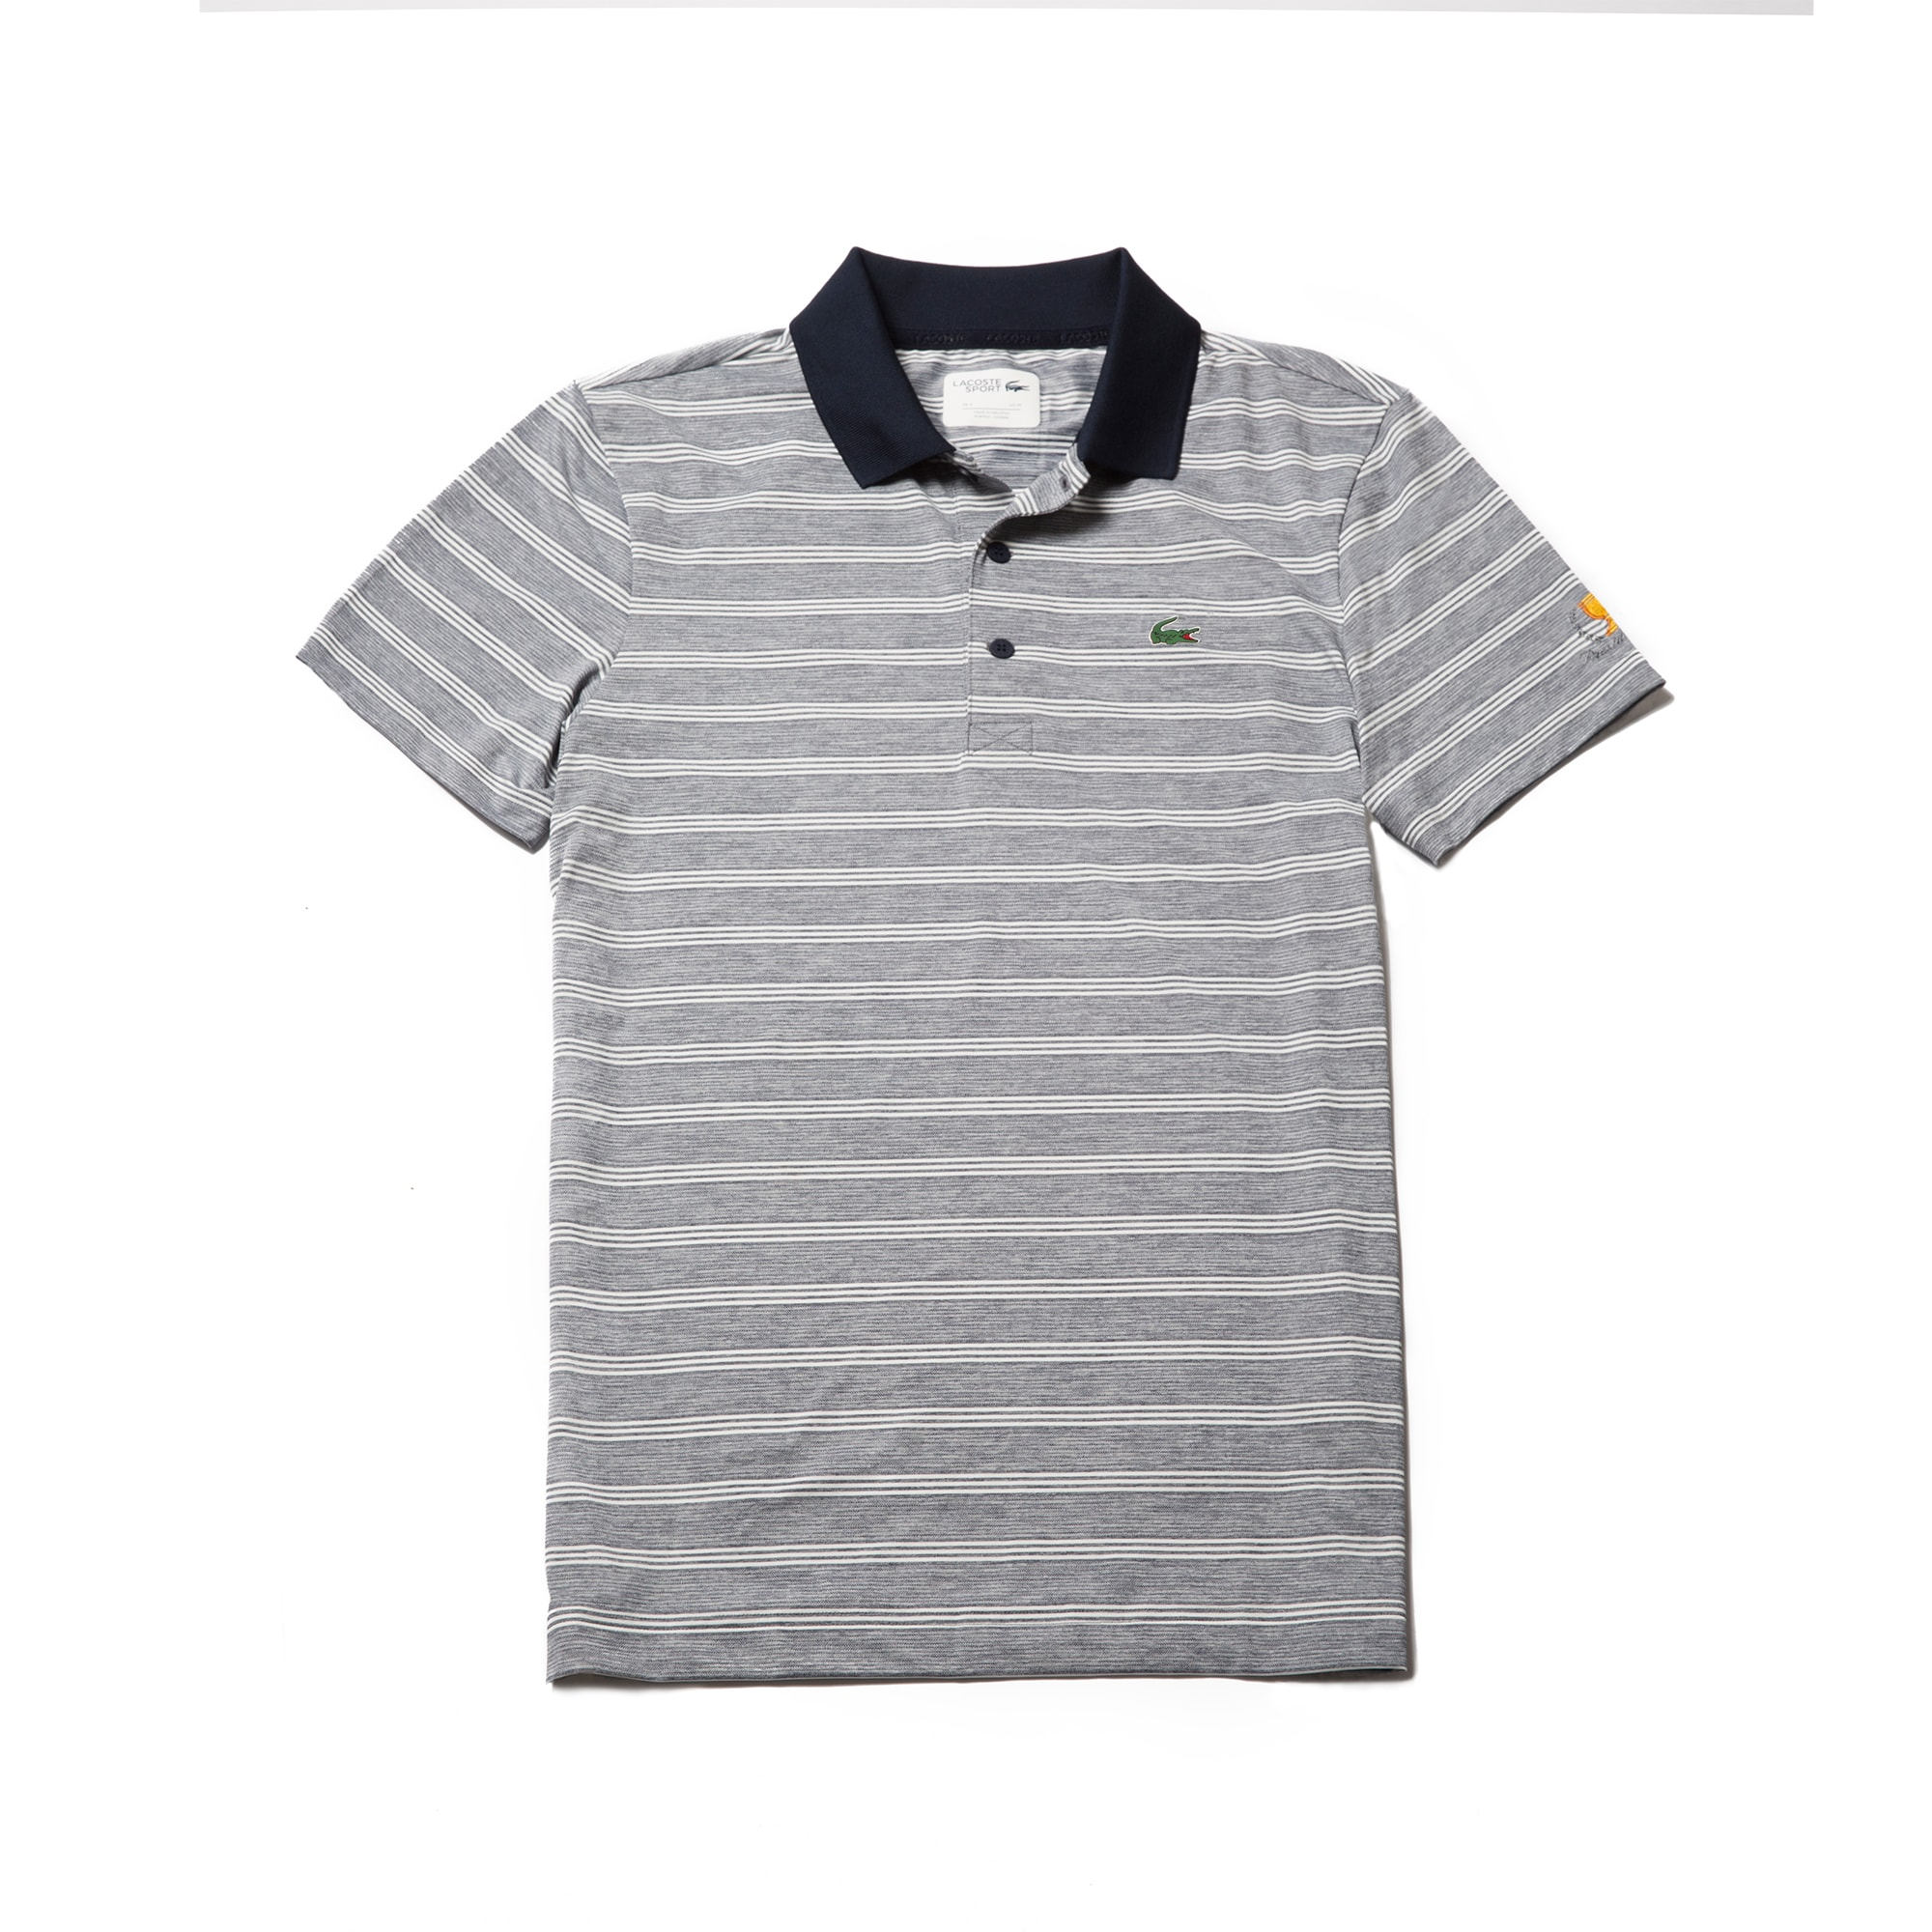 Men's  SPORT Presidents Cup Edition Contrast Neck Polo